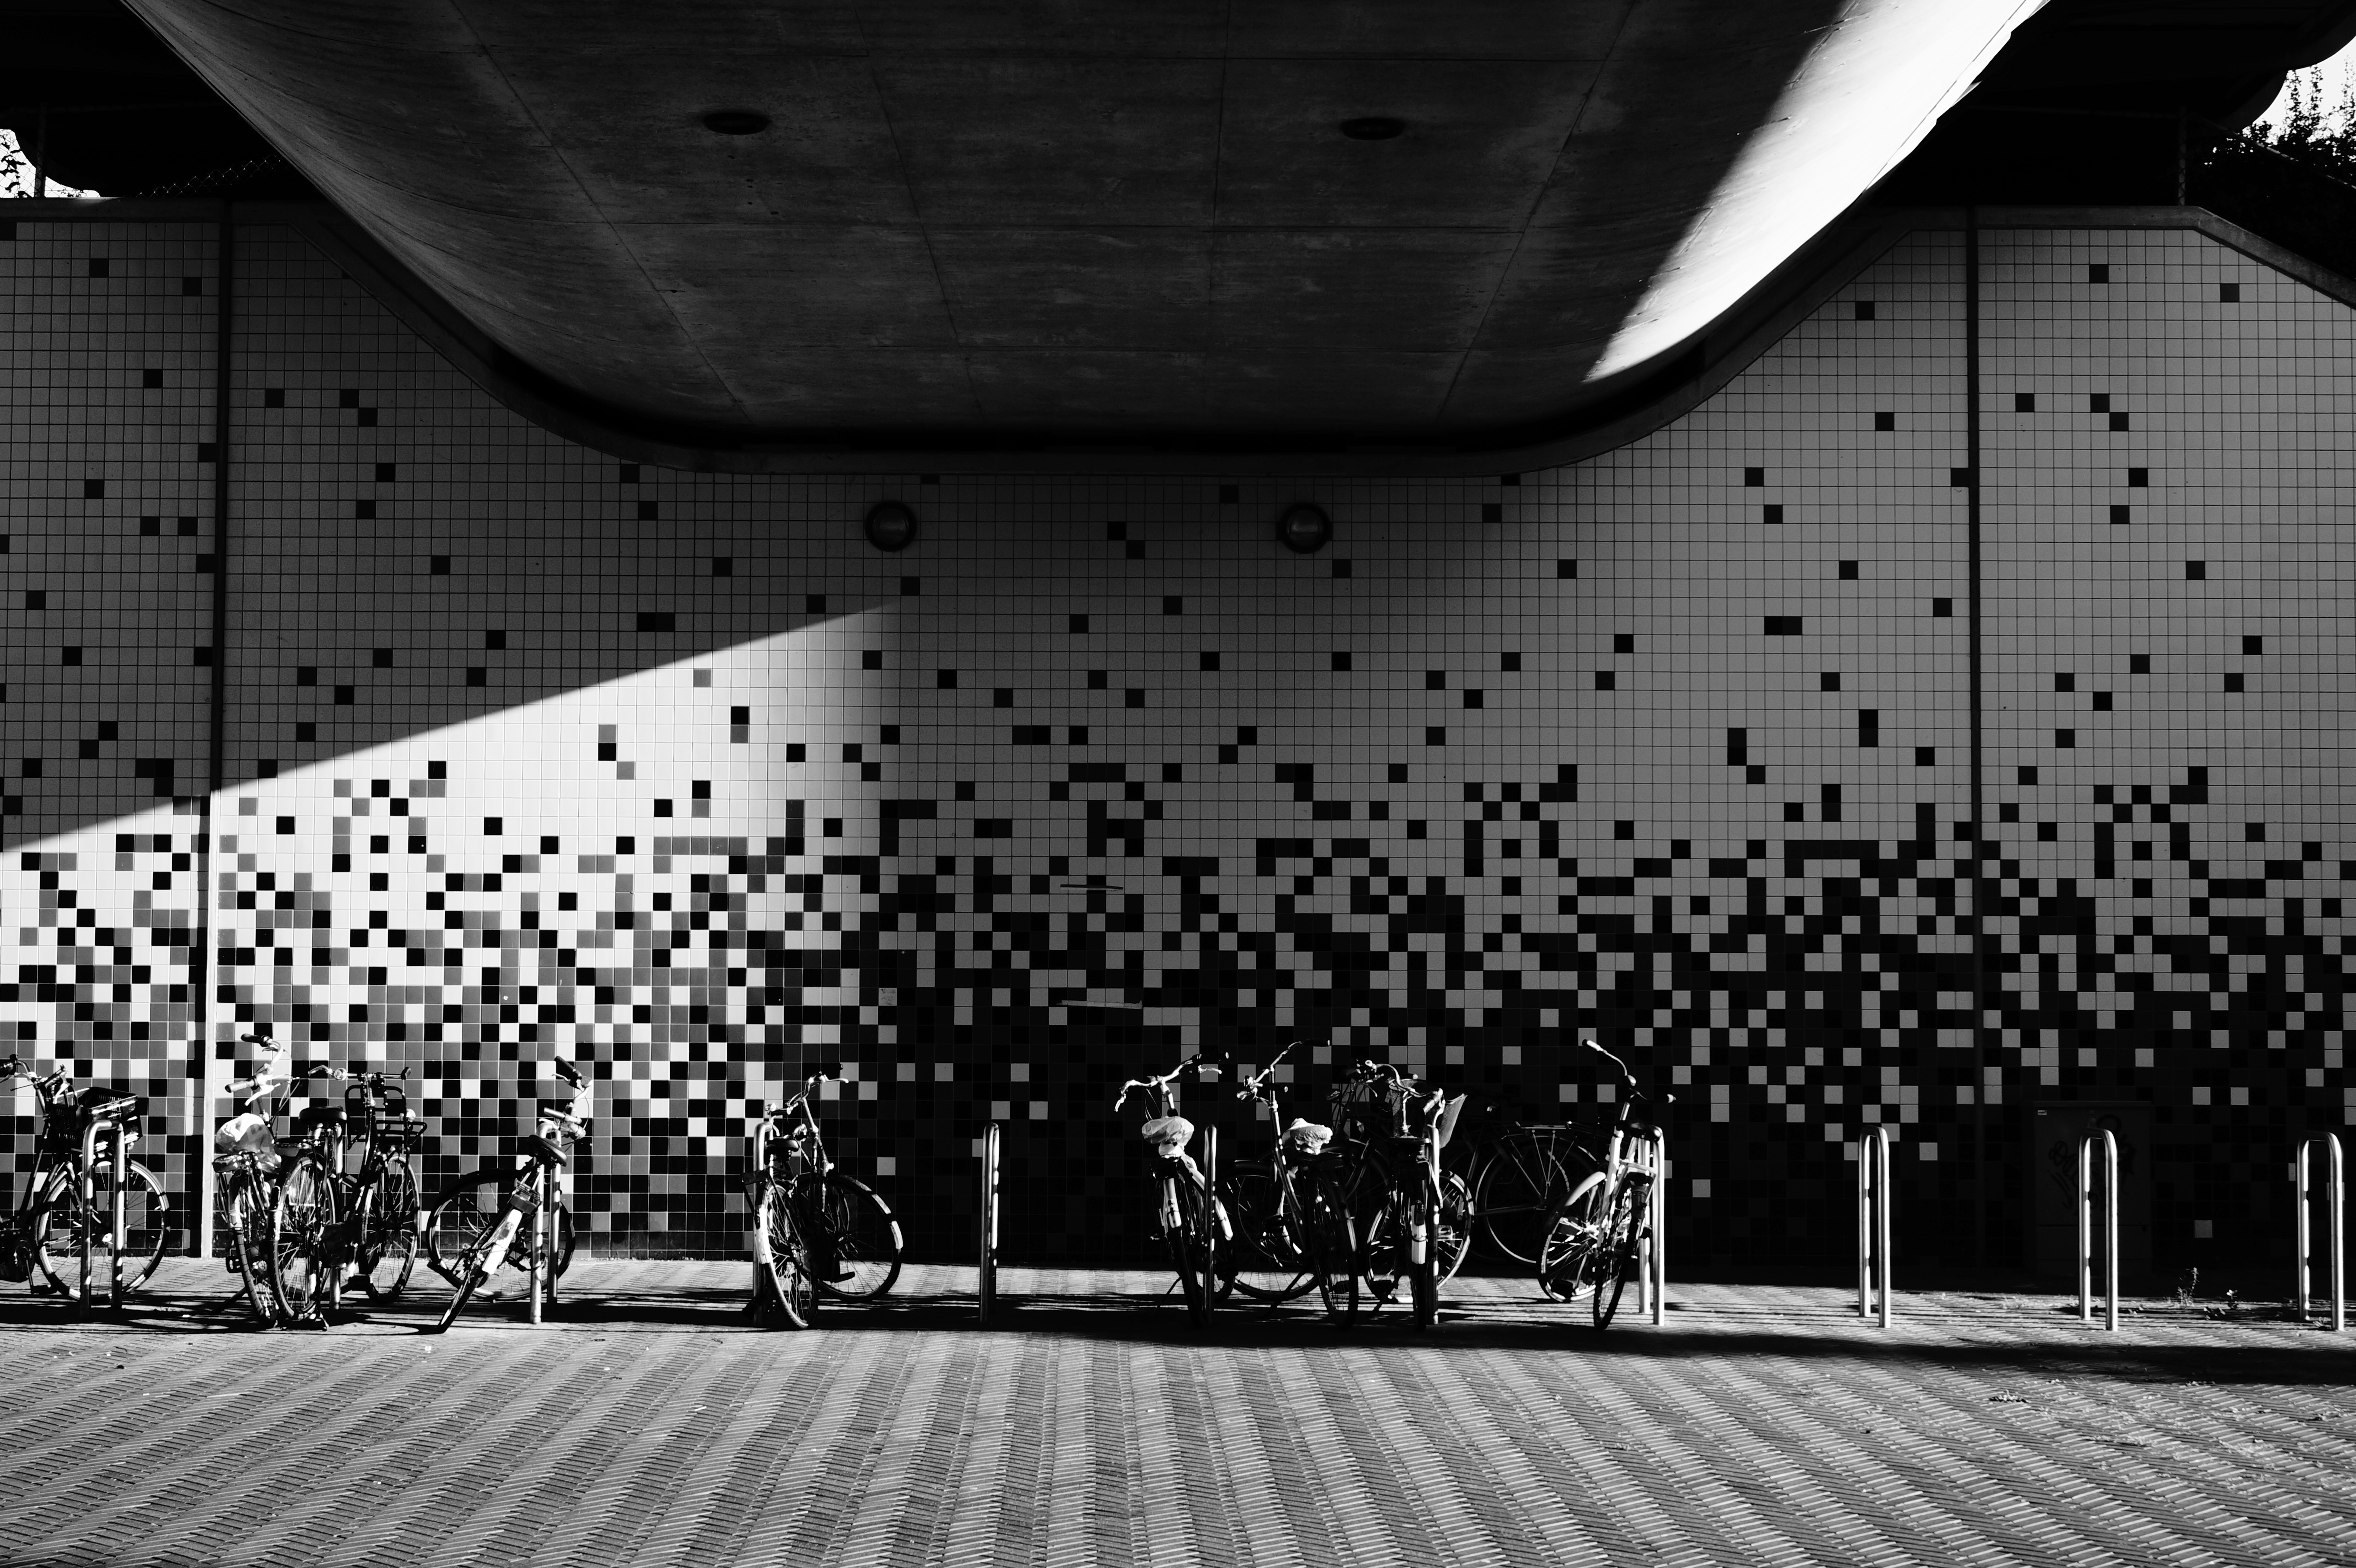 bike racks with black and white tiled walls